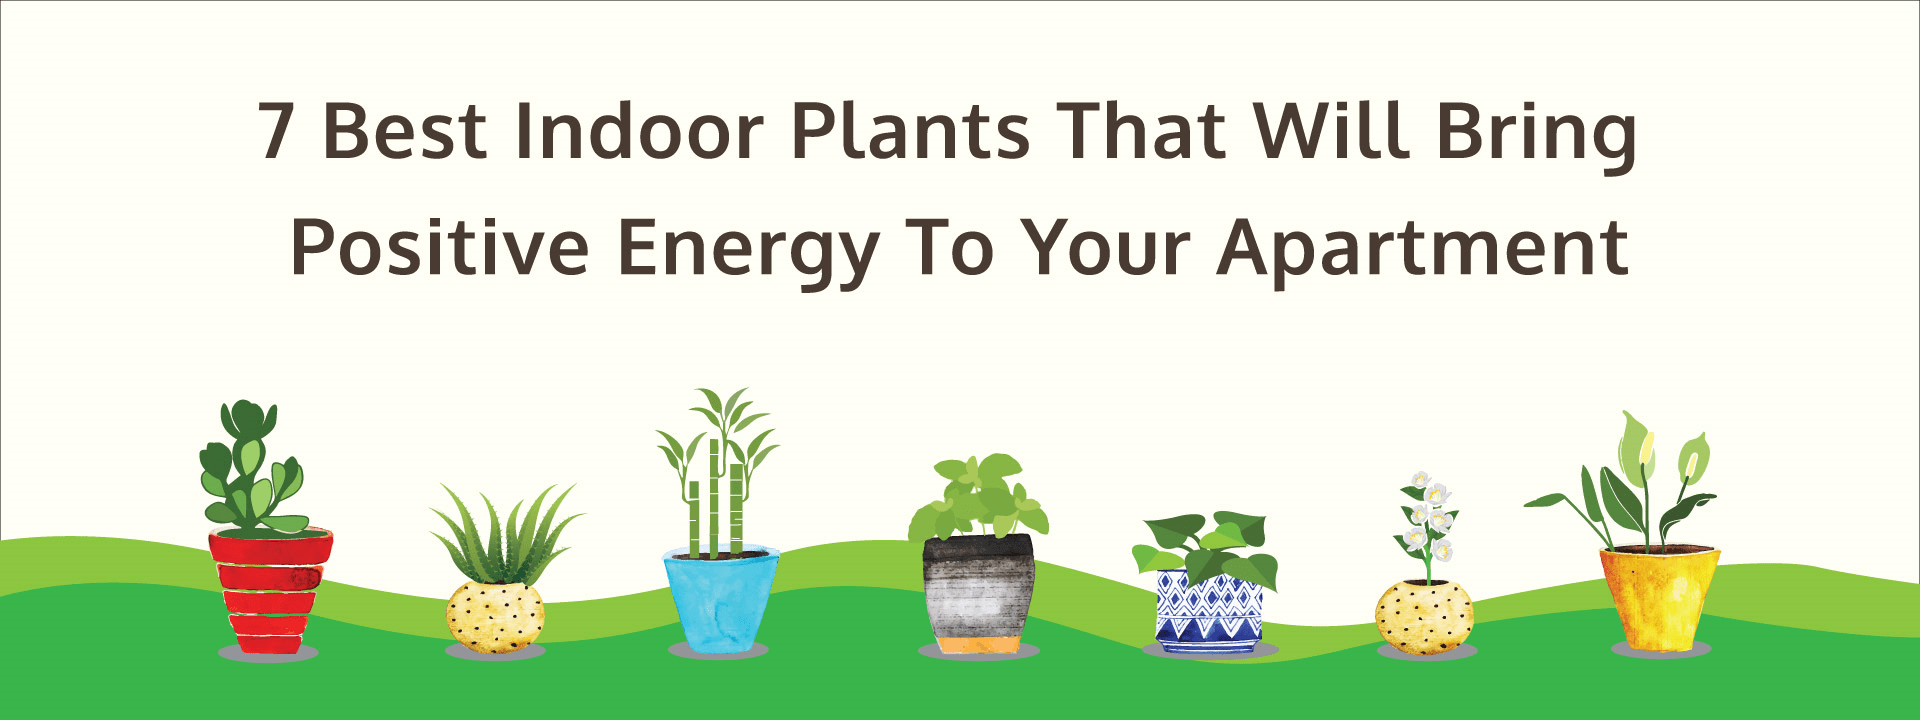 7 Best Indoor Plants That Will Bring Positive Energy To Your Apartment